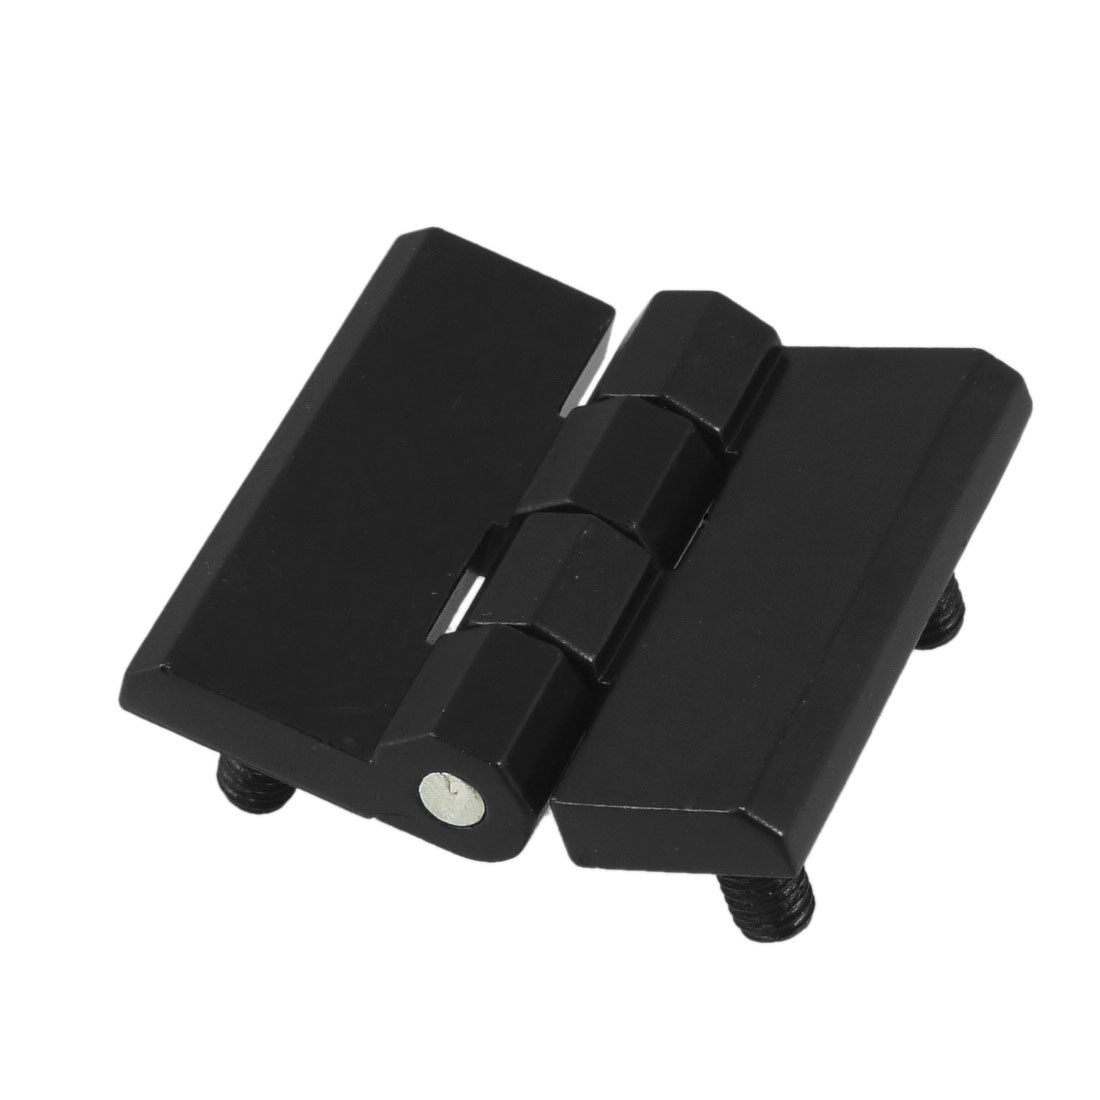 40mm x 40mm 5mm Thread Diameter Alloy Hidden Concealed Cabinet Door Hinge Black